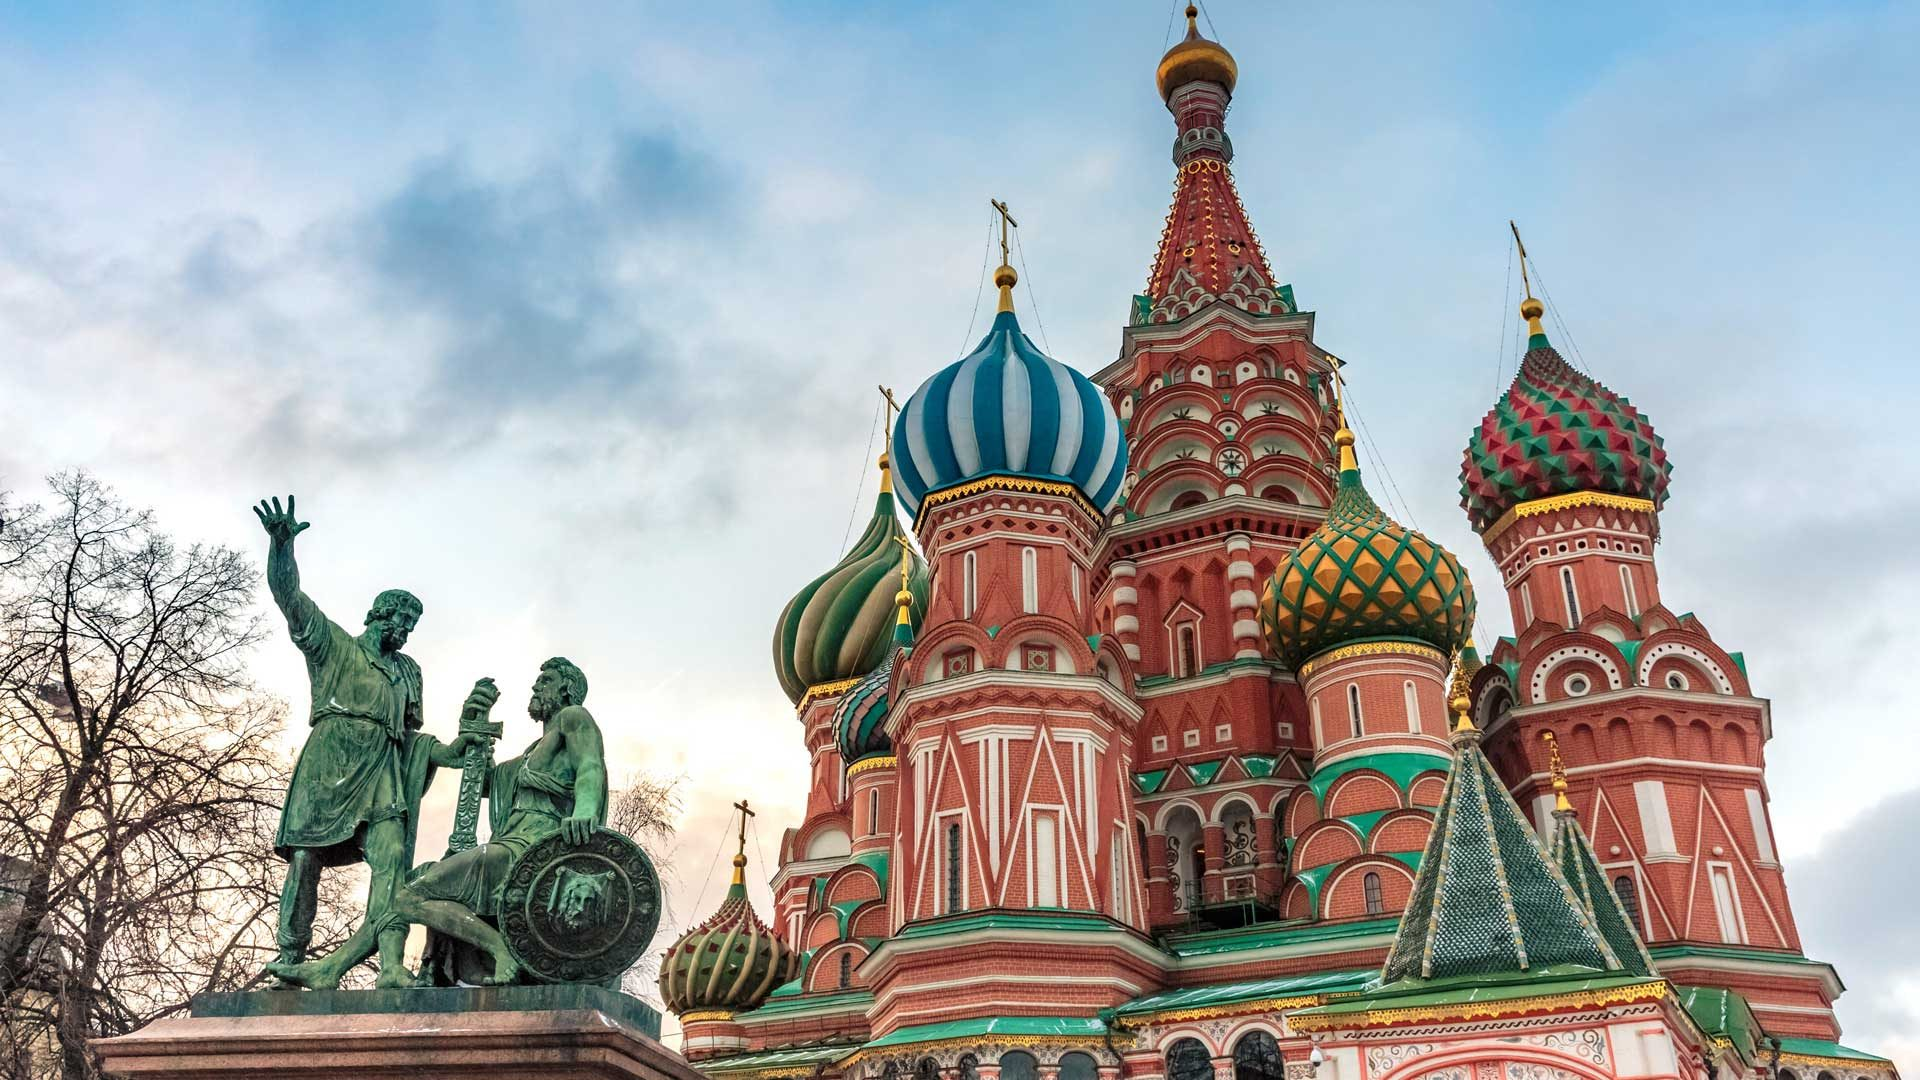 St. Basil's Cathedral in Red Square, Moscow, Russia with GeoEx